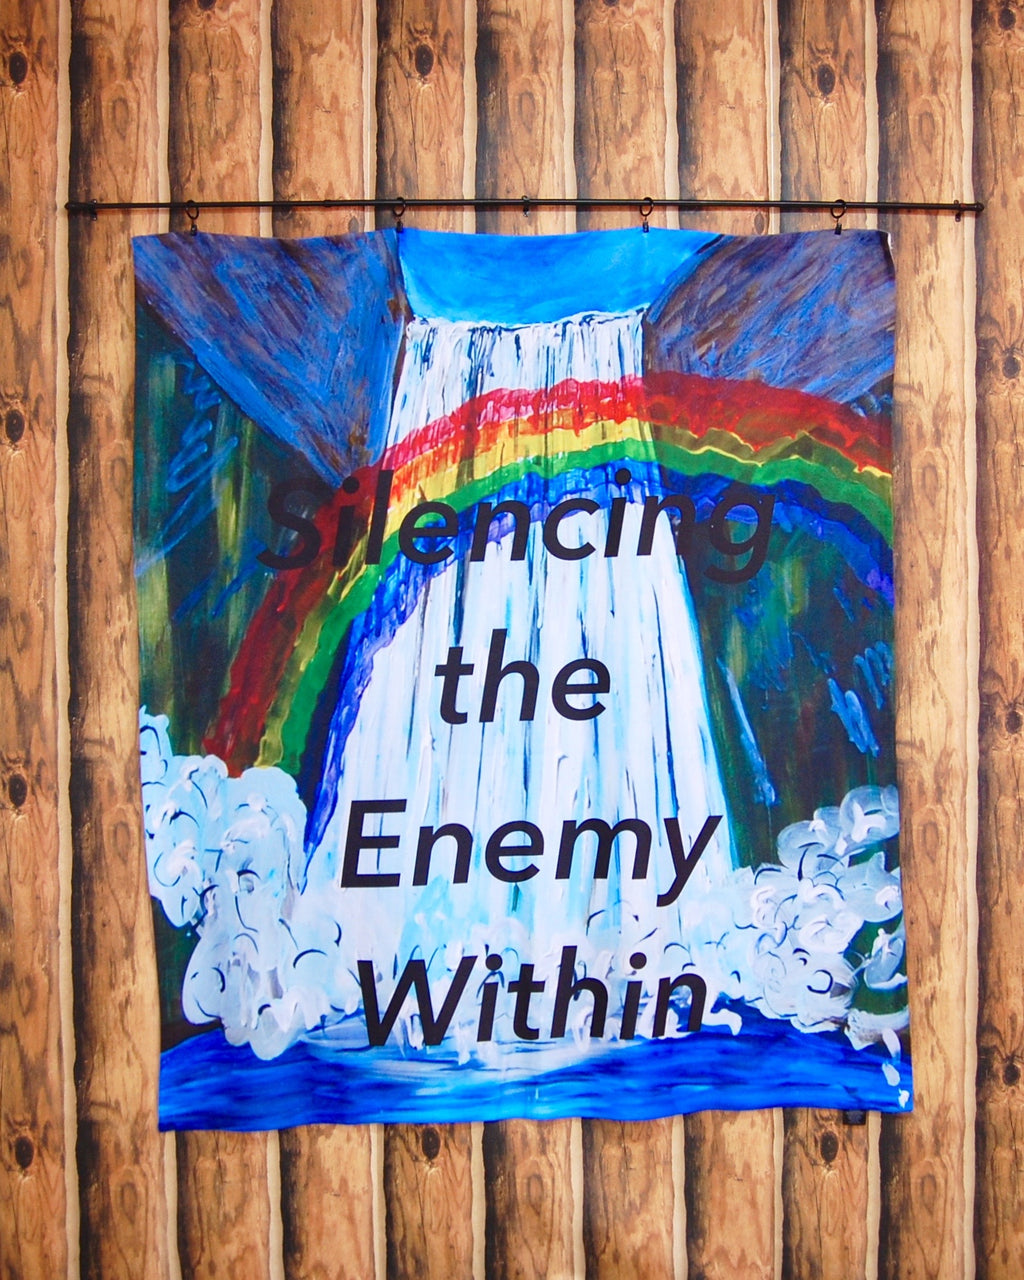 Kristin Hough, Silencing the Enemy Within